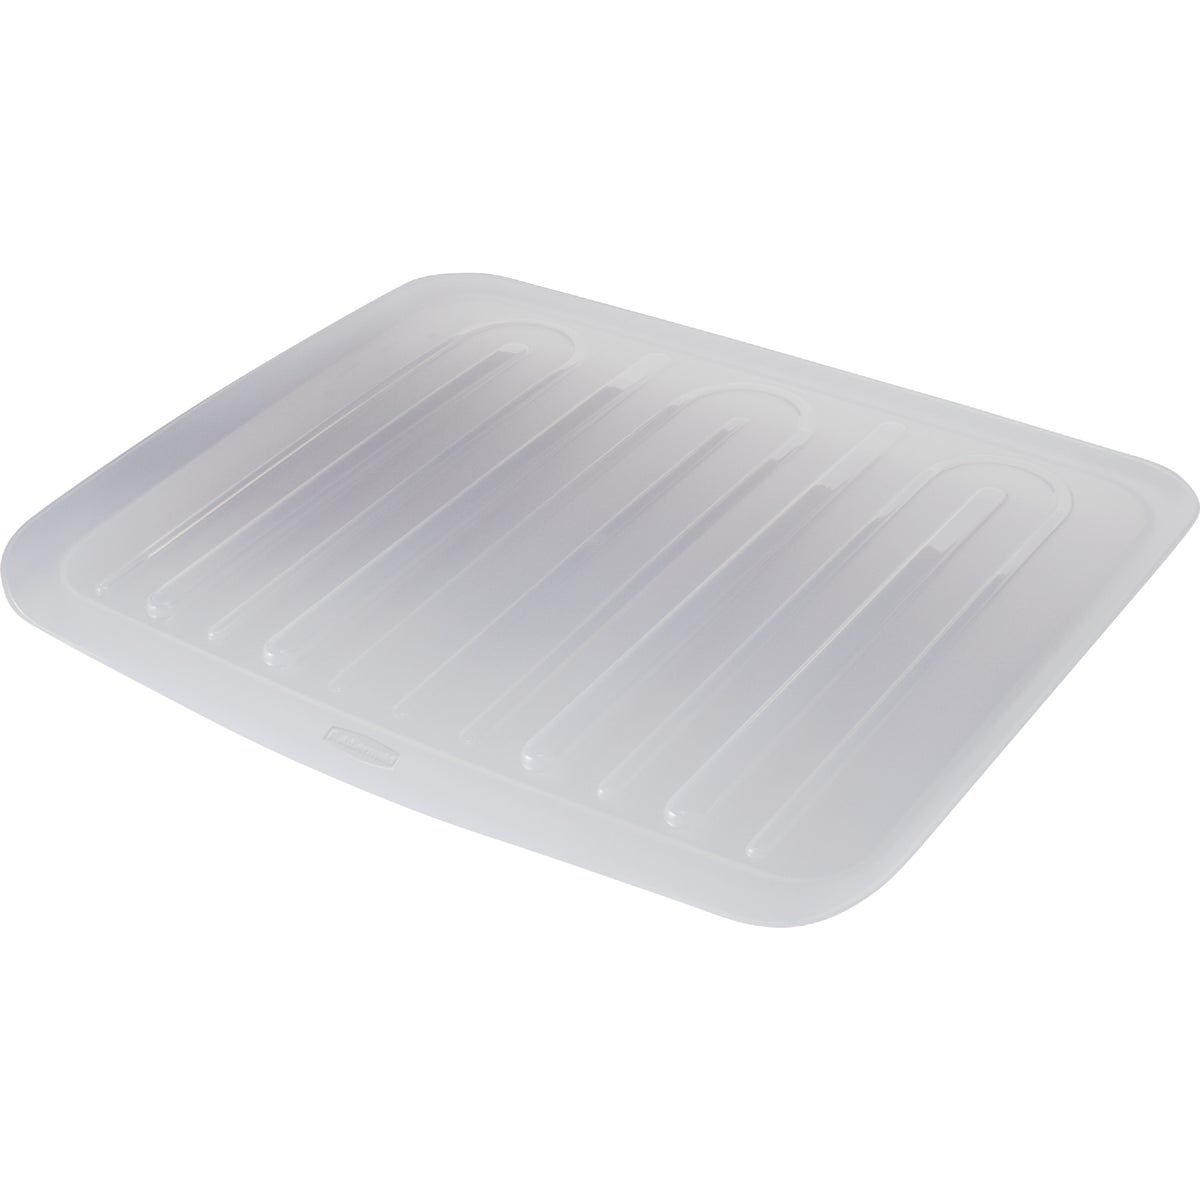 LARGE CLEAR DRAINER TRAY - 1182MACLR by Rubbermaid Home